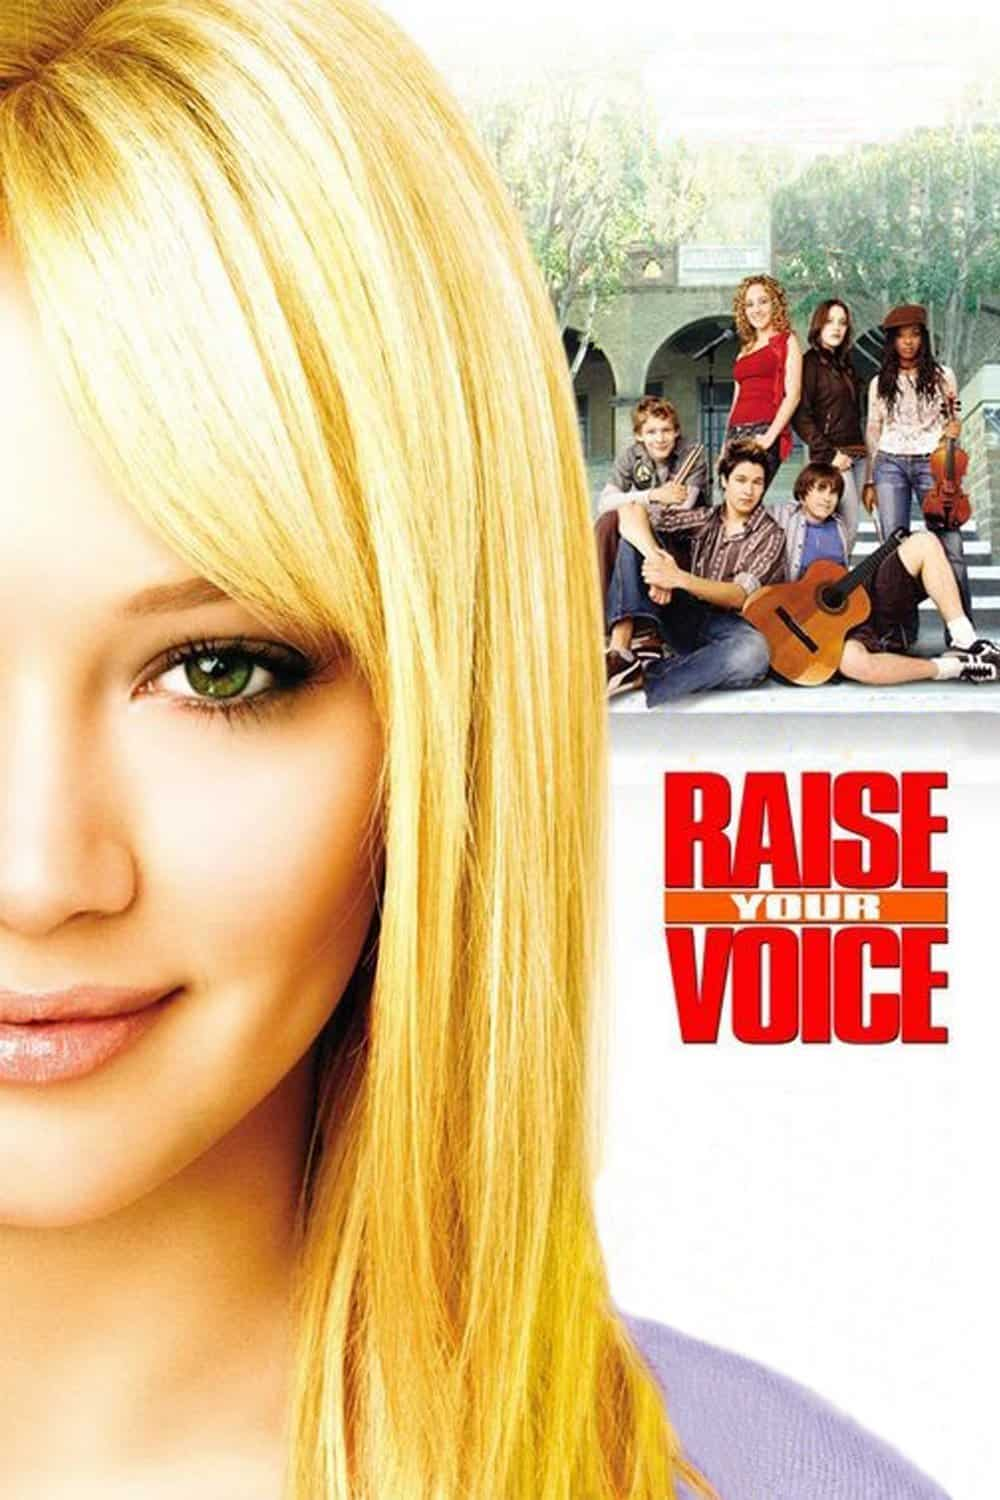 Raise Your Voice, 2004